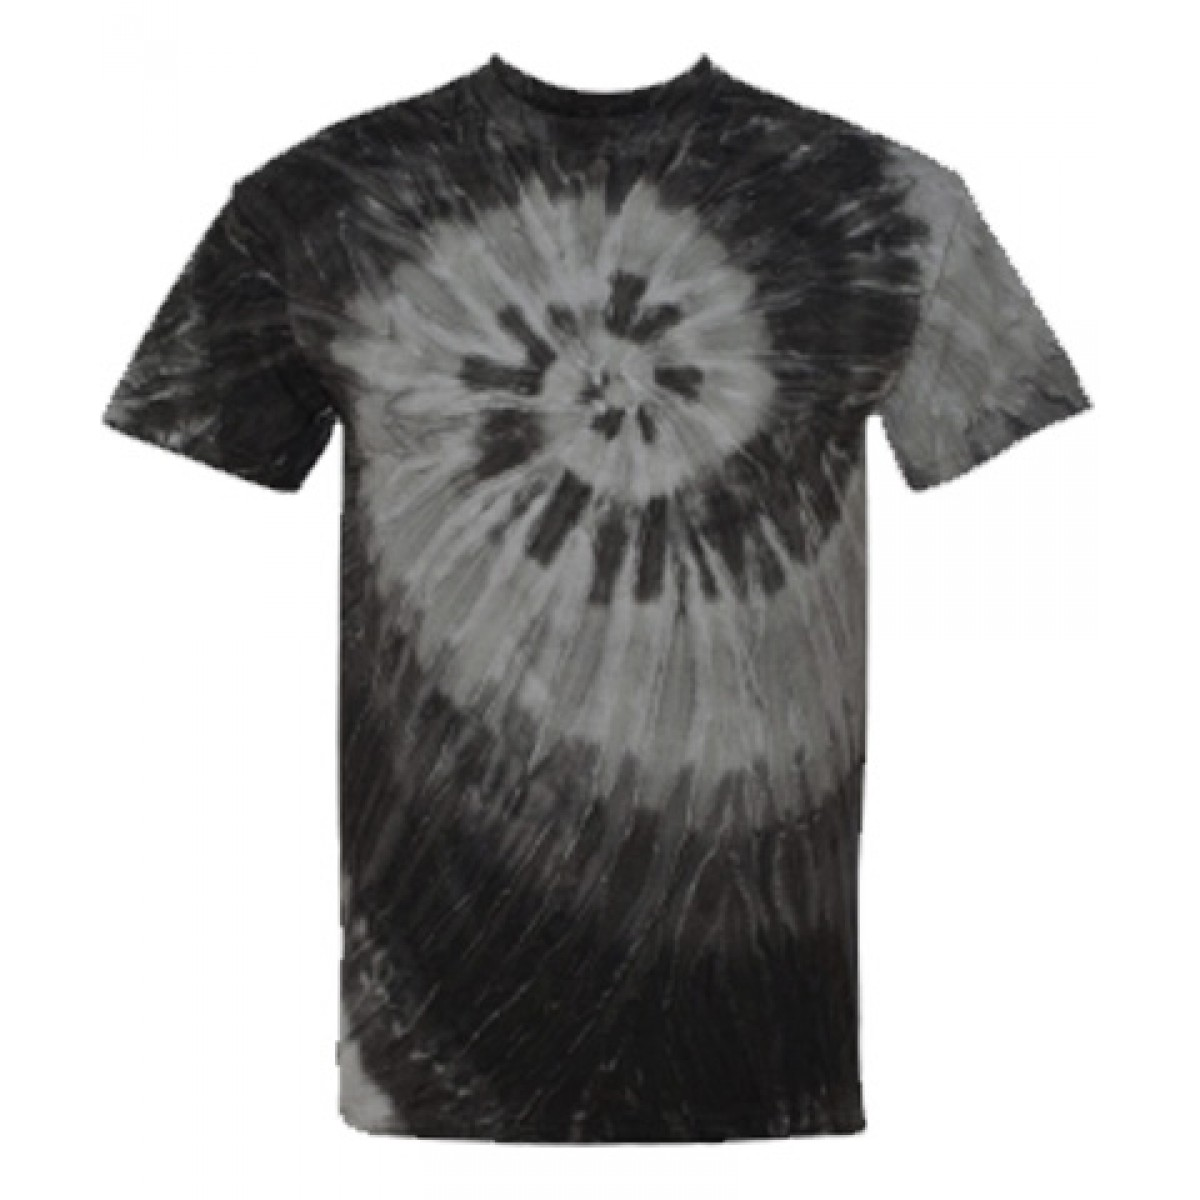 Blue or Black Ripple Tie Dye T-Shirt-White/Black-2XL